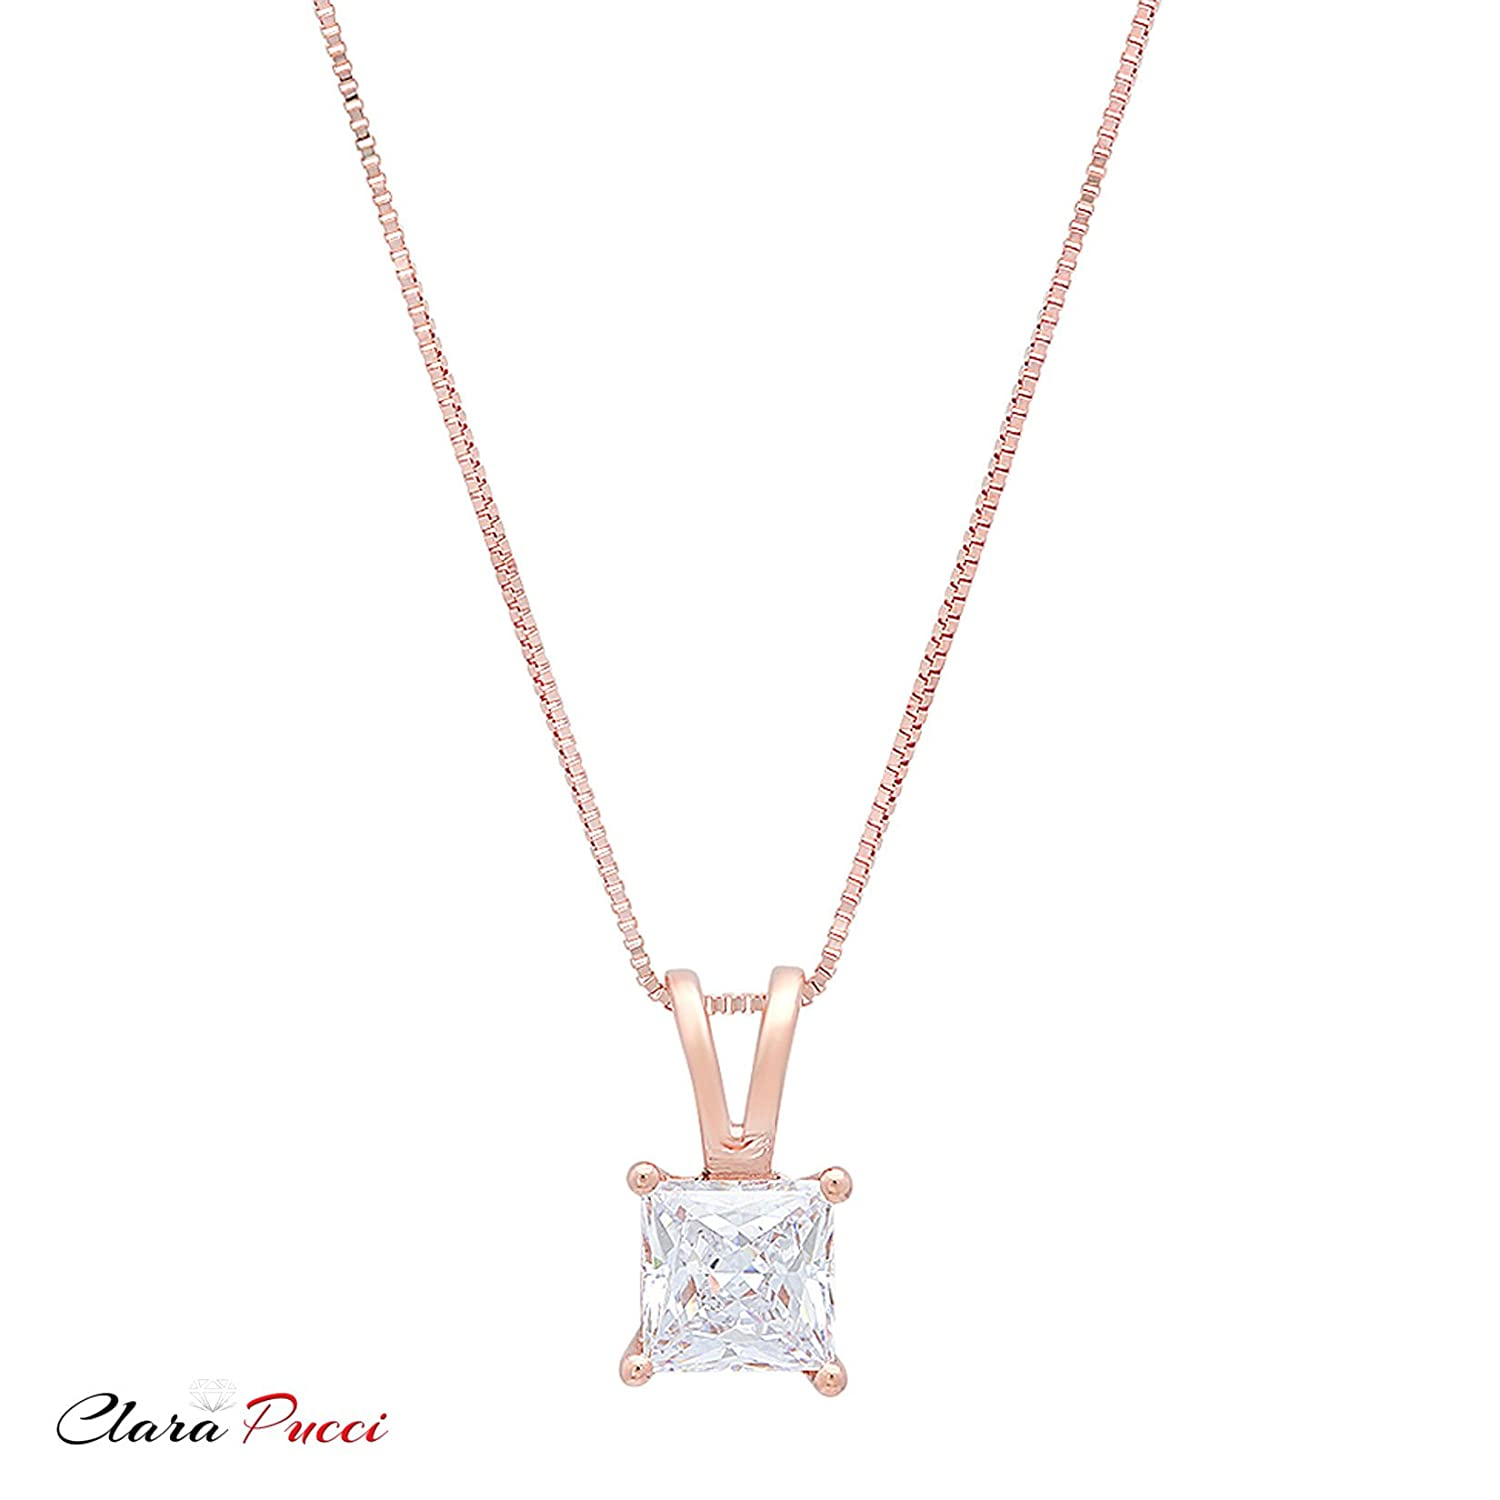 Clara Pucci 0.8 CT Princess Cut CZ Solid 14K Rose Gold Solitaire Pendant Box Necklace 16 Chain